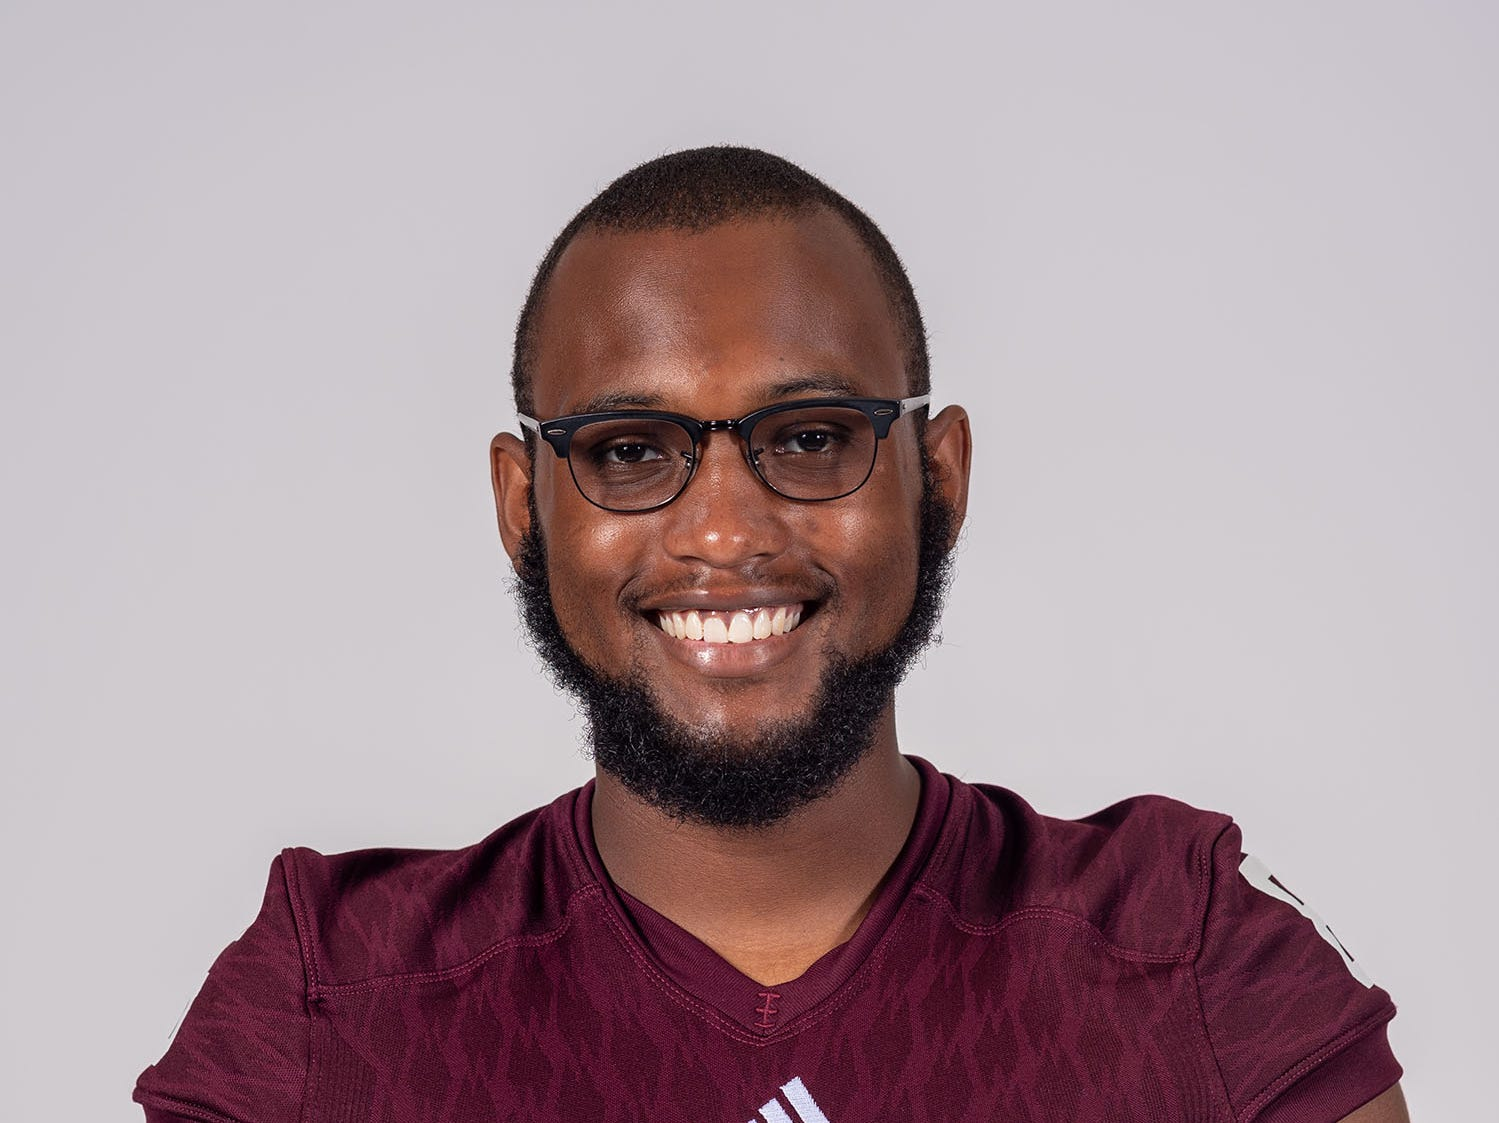 Harrison Rice, a 2017 Northeastern High School graduate, had 51 tackles in 10 games for the Earlham College football team. He also had 4.5 tackles for a loss, a fumble recovery and blocked a kick.